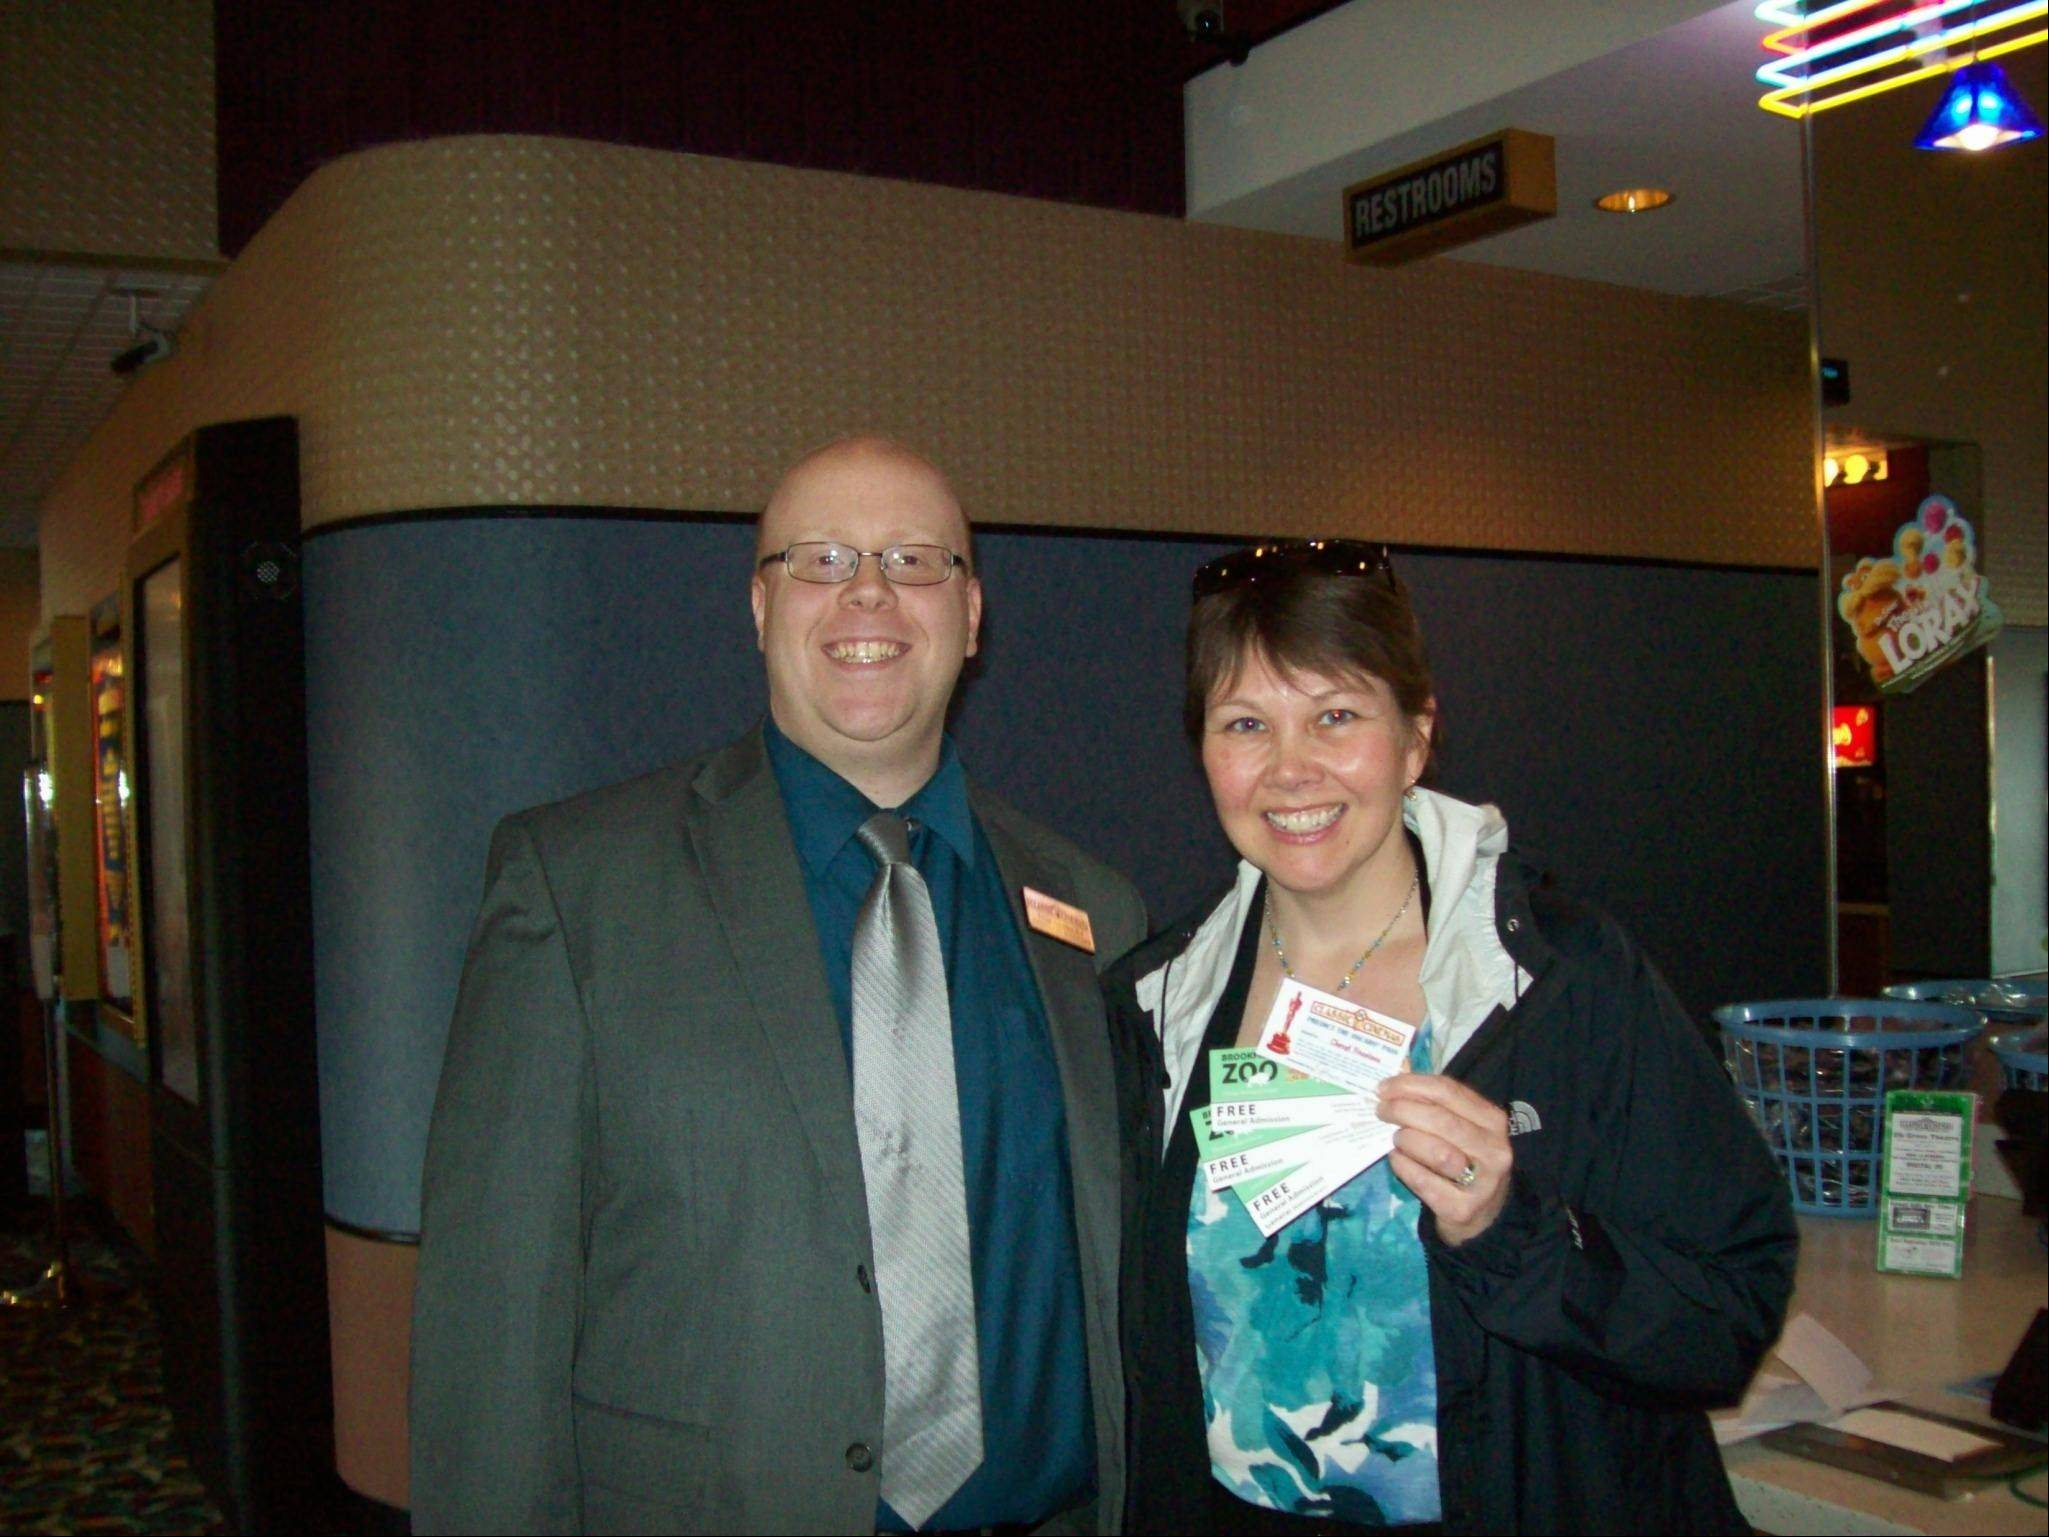 Cheryl Firestone with Elk Grove Theatre manager Tom Habbley.